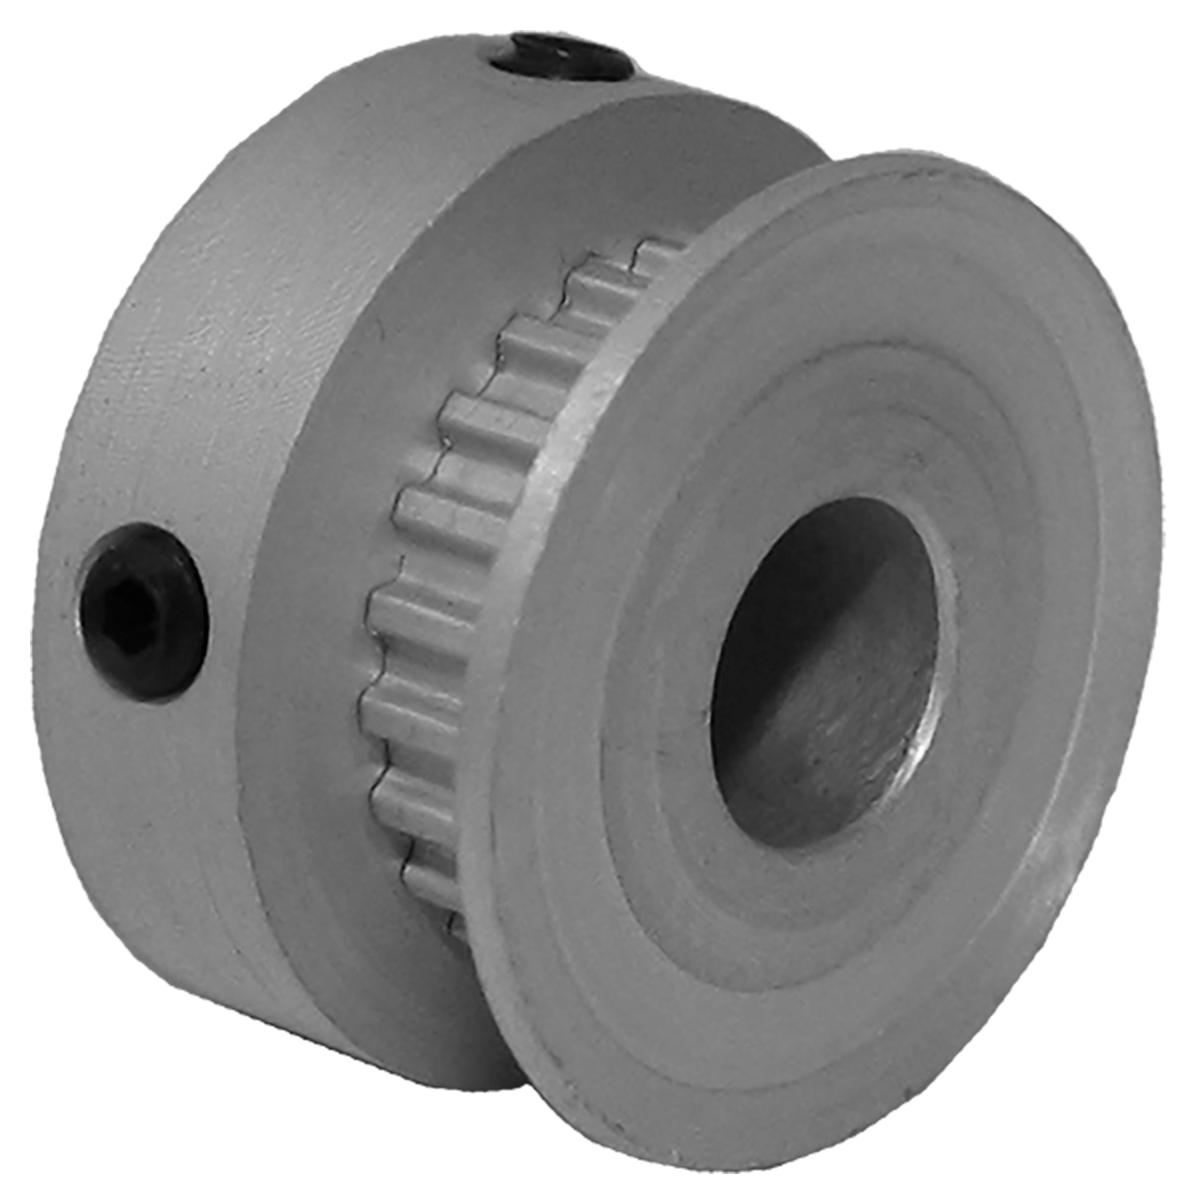 22MP012-6CA3 - Aluminum Imperial Pitch Pulleys